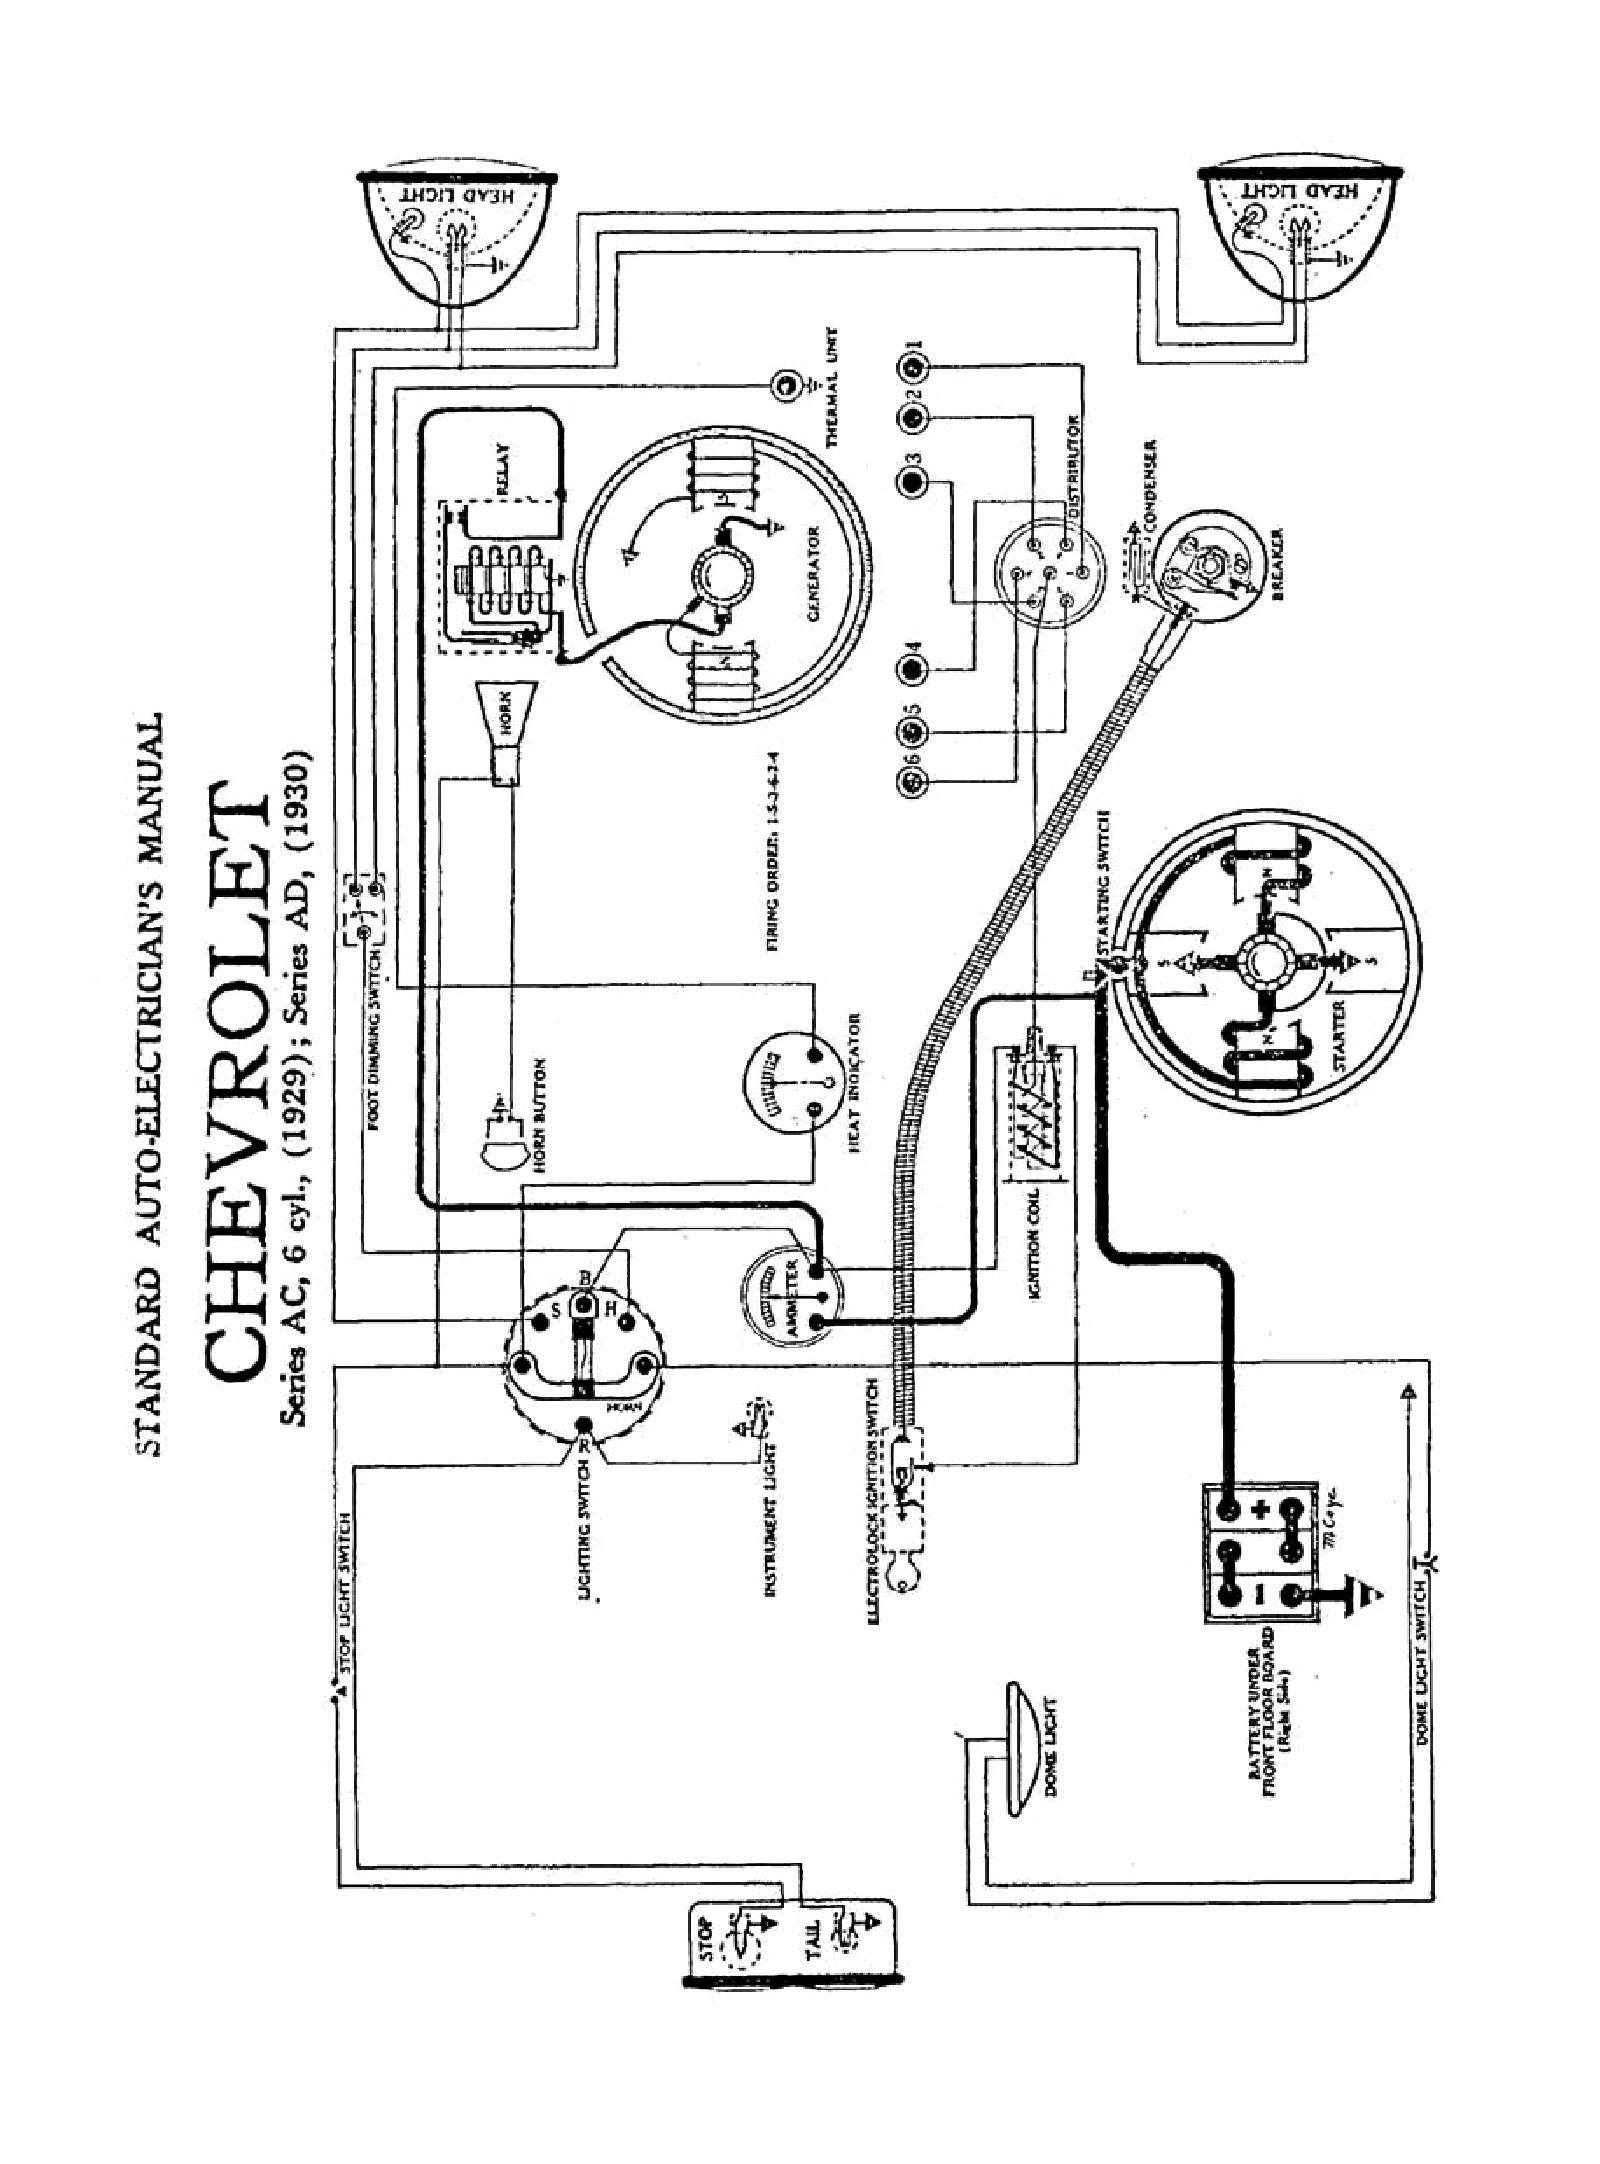 hight resolution of 1930 ford wiring diagram wiring diagram g11 1930 model a wiring diagram